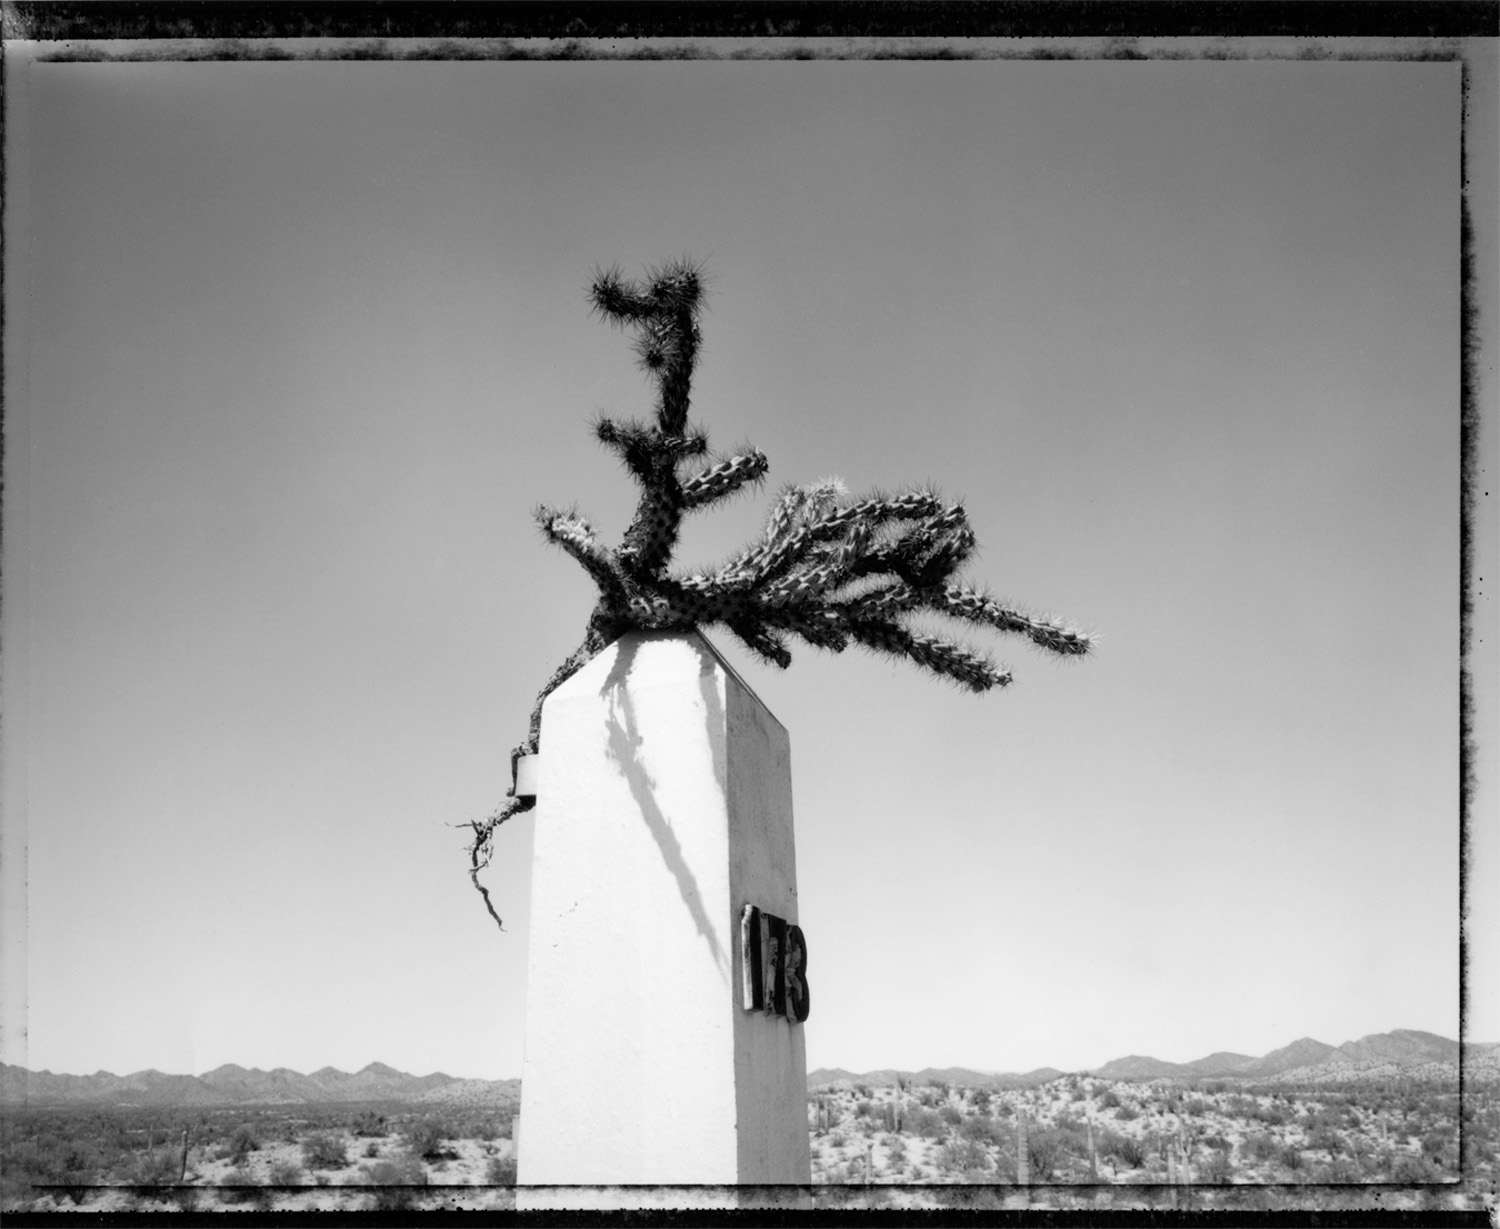 Cactus placed on International Boundary Marker, 1993